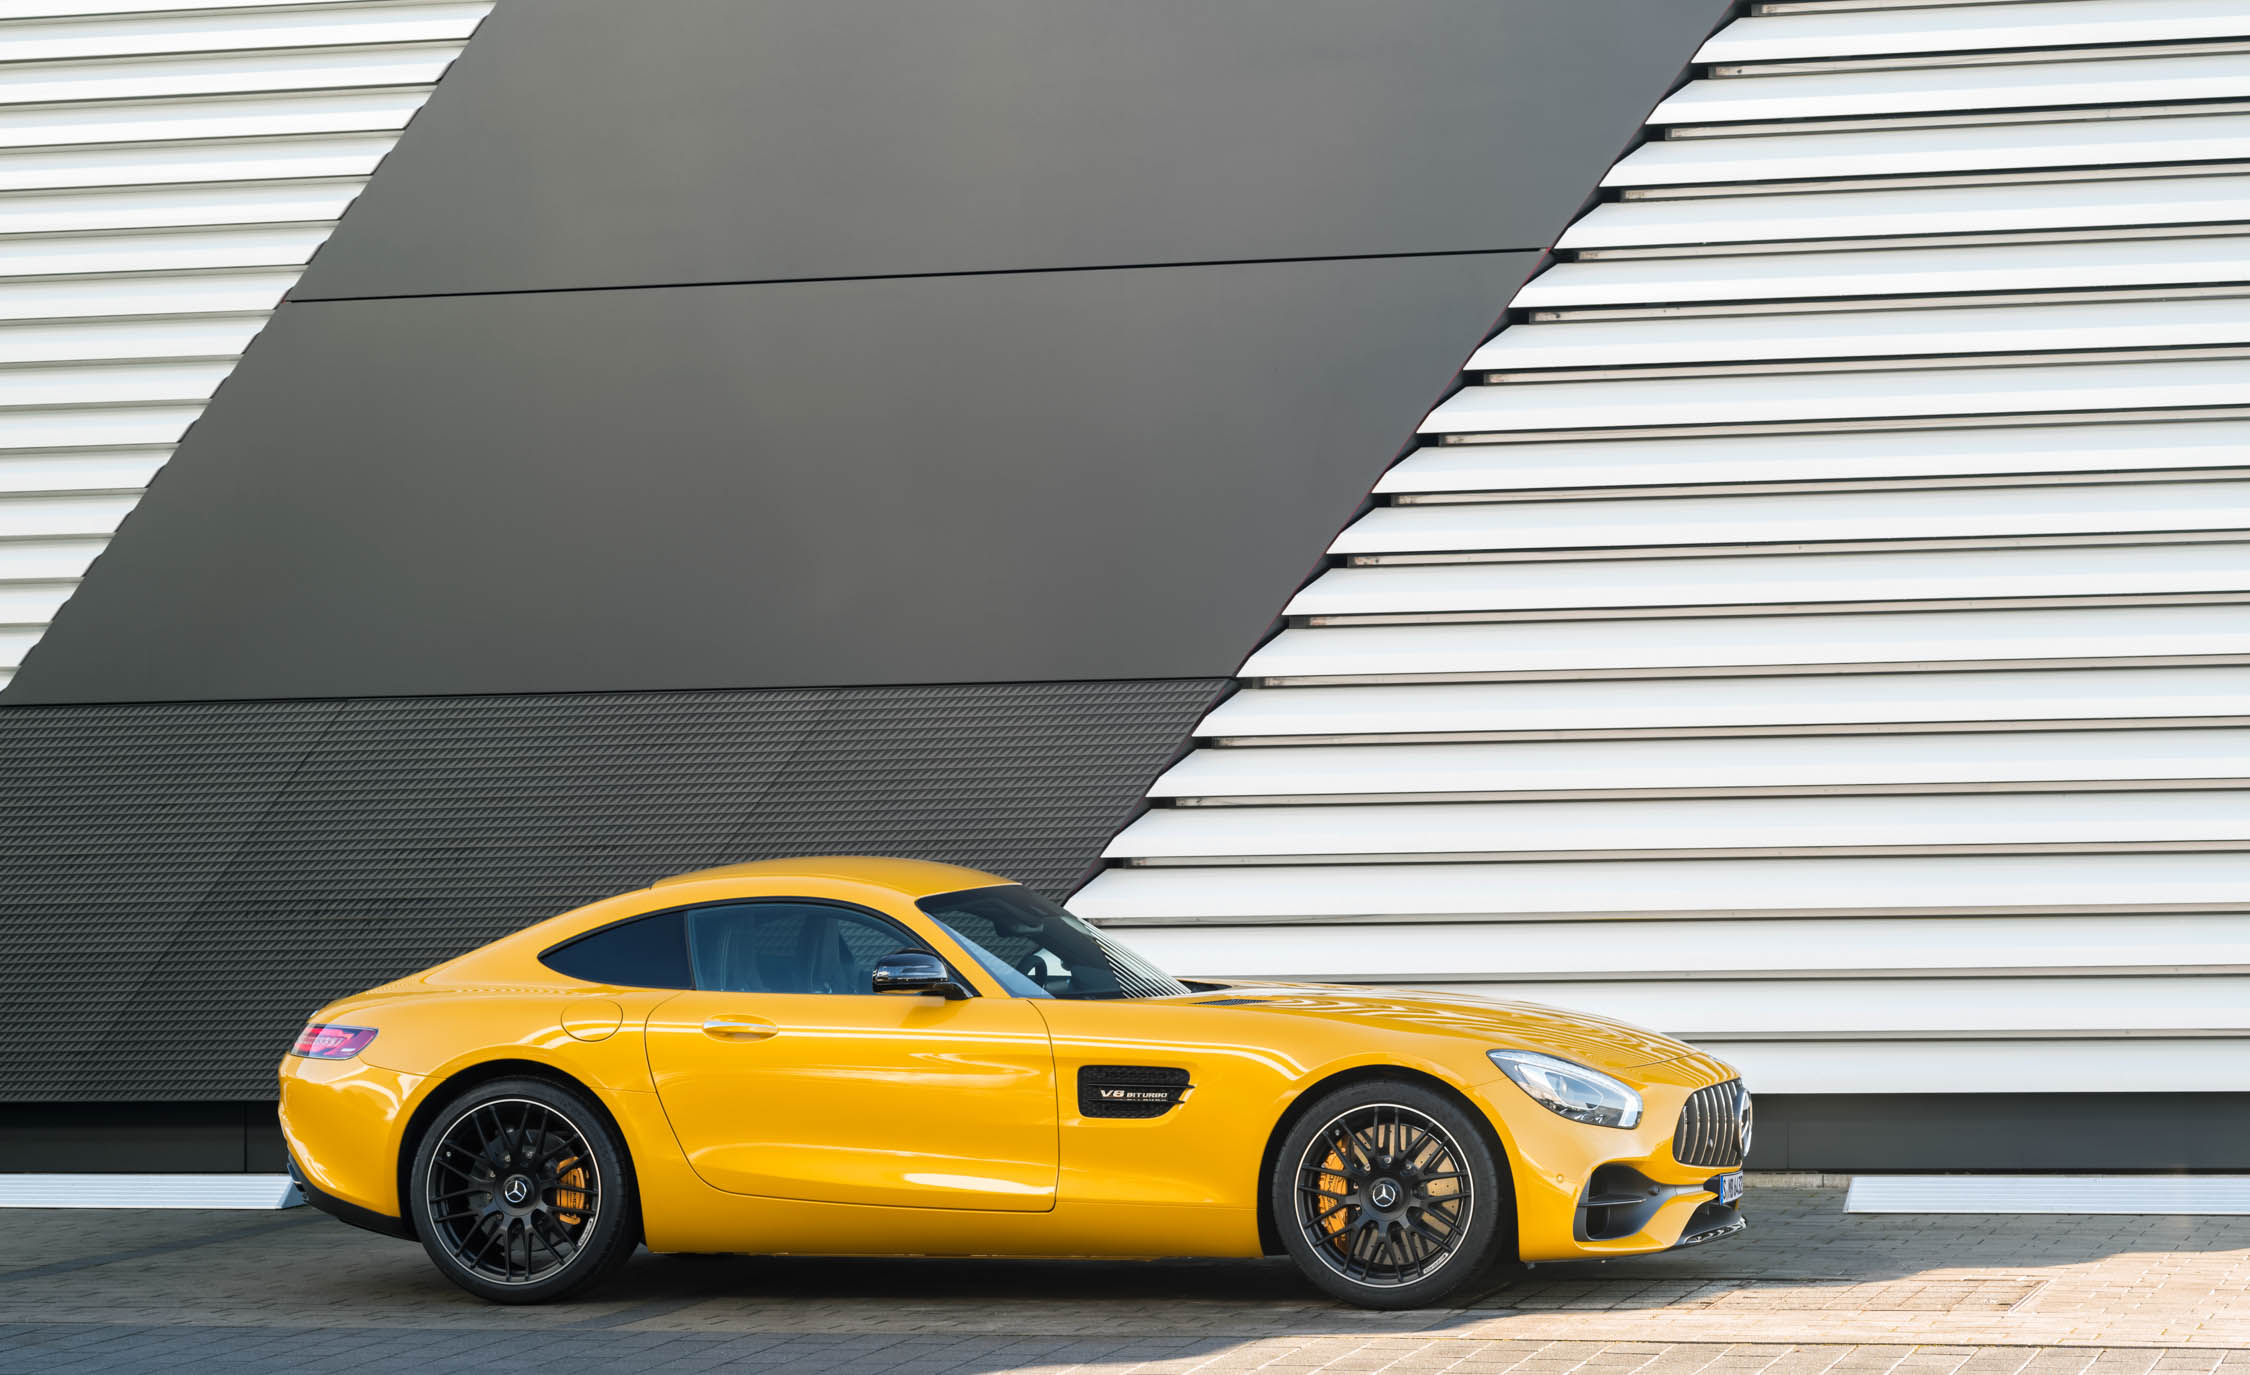 2018 Mercedes Amg Gt S Exterior Side (View 3 of 23)